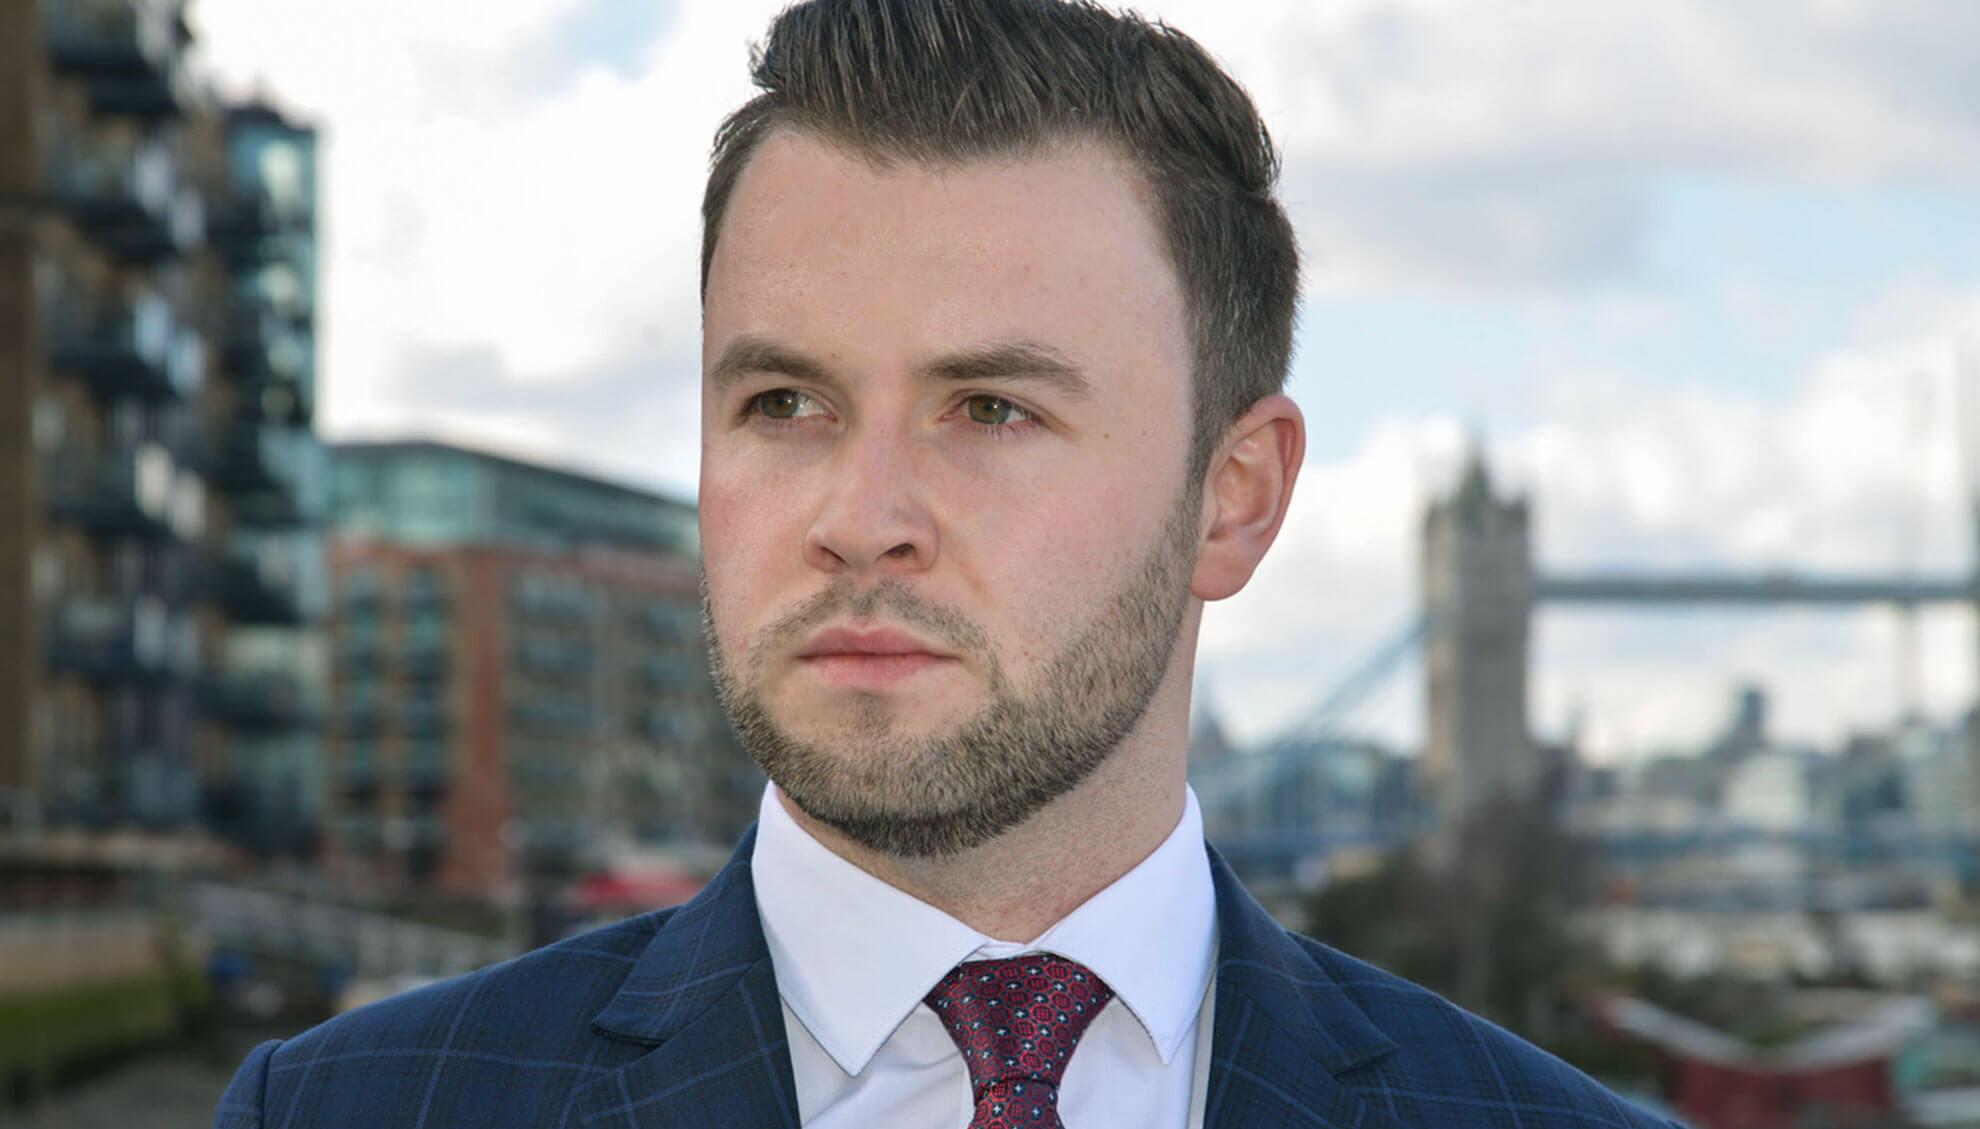 Danny Brier Aviation Resourcing Consultant